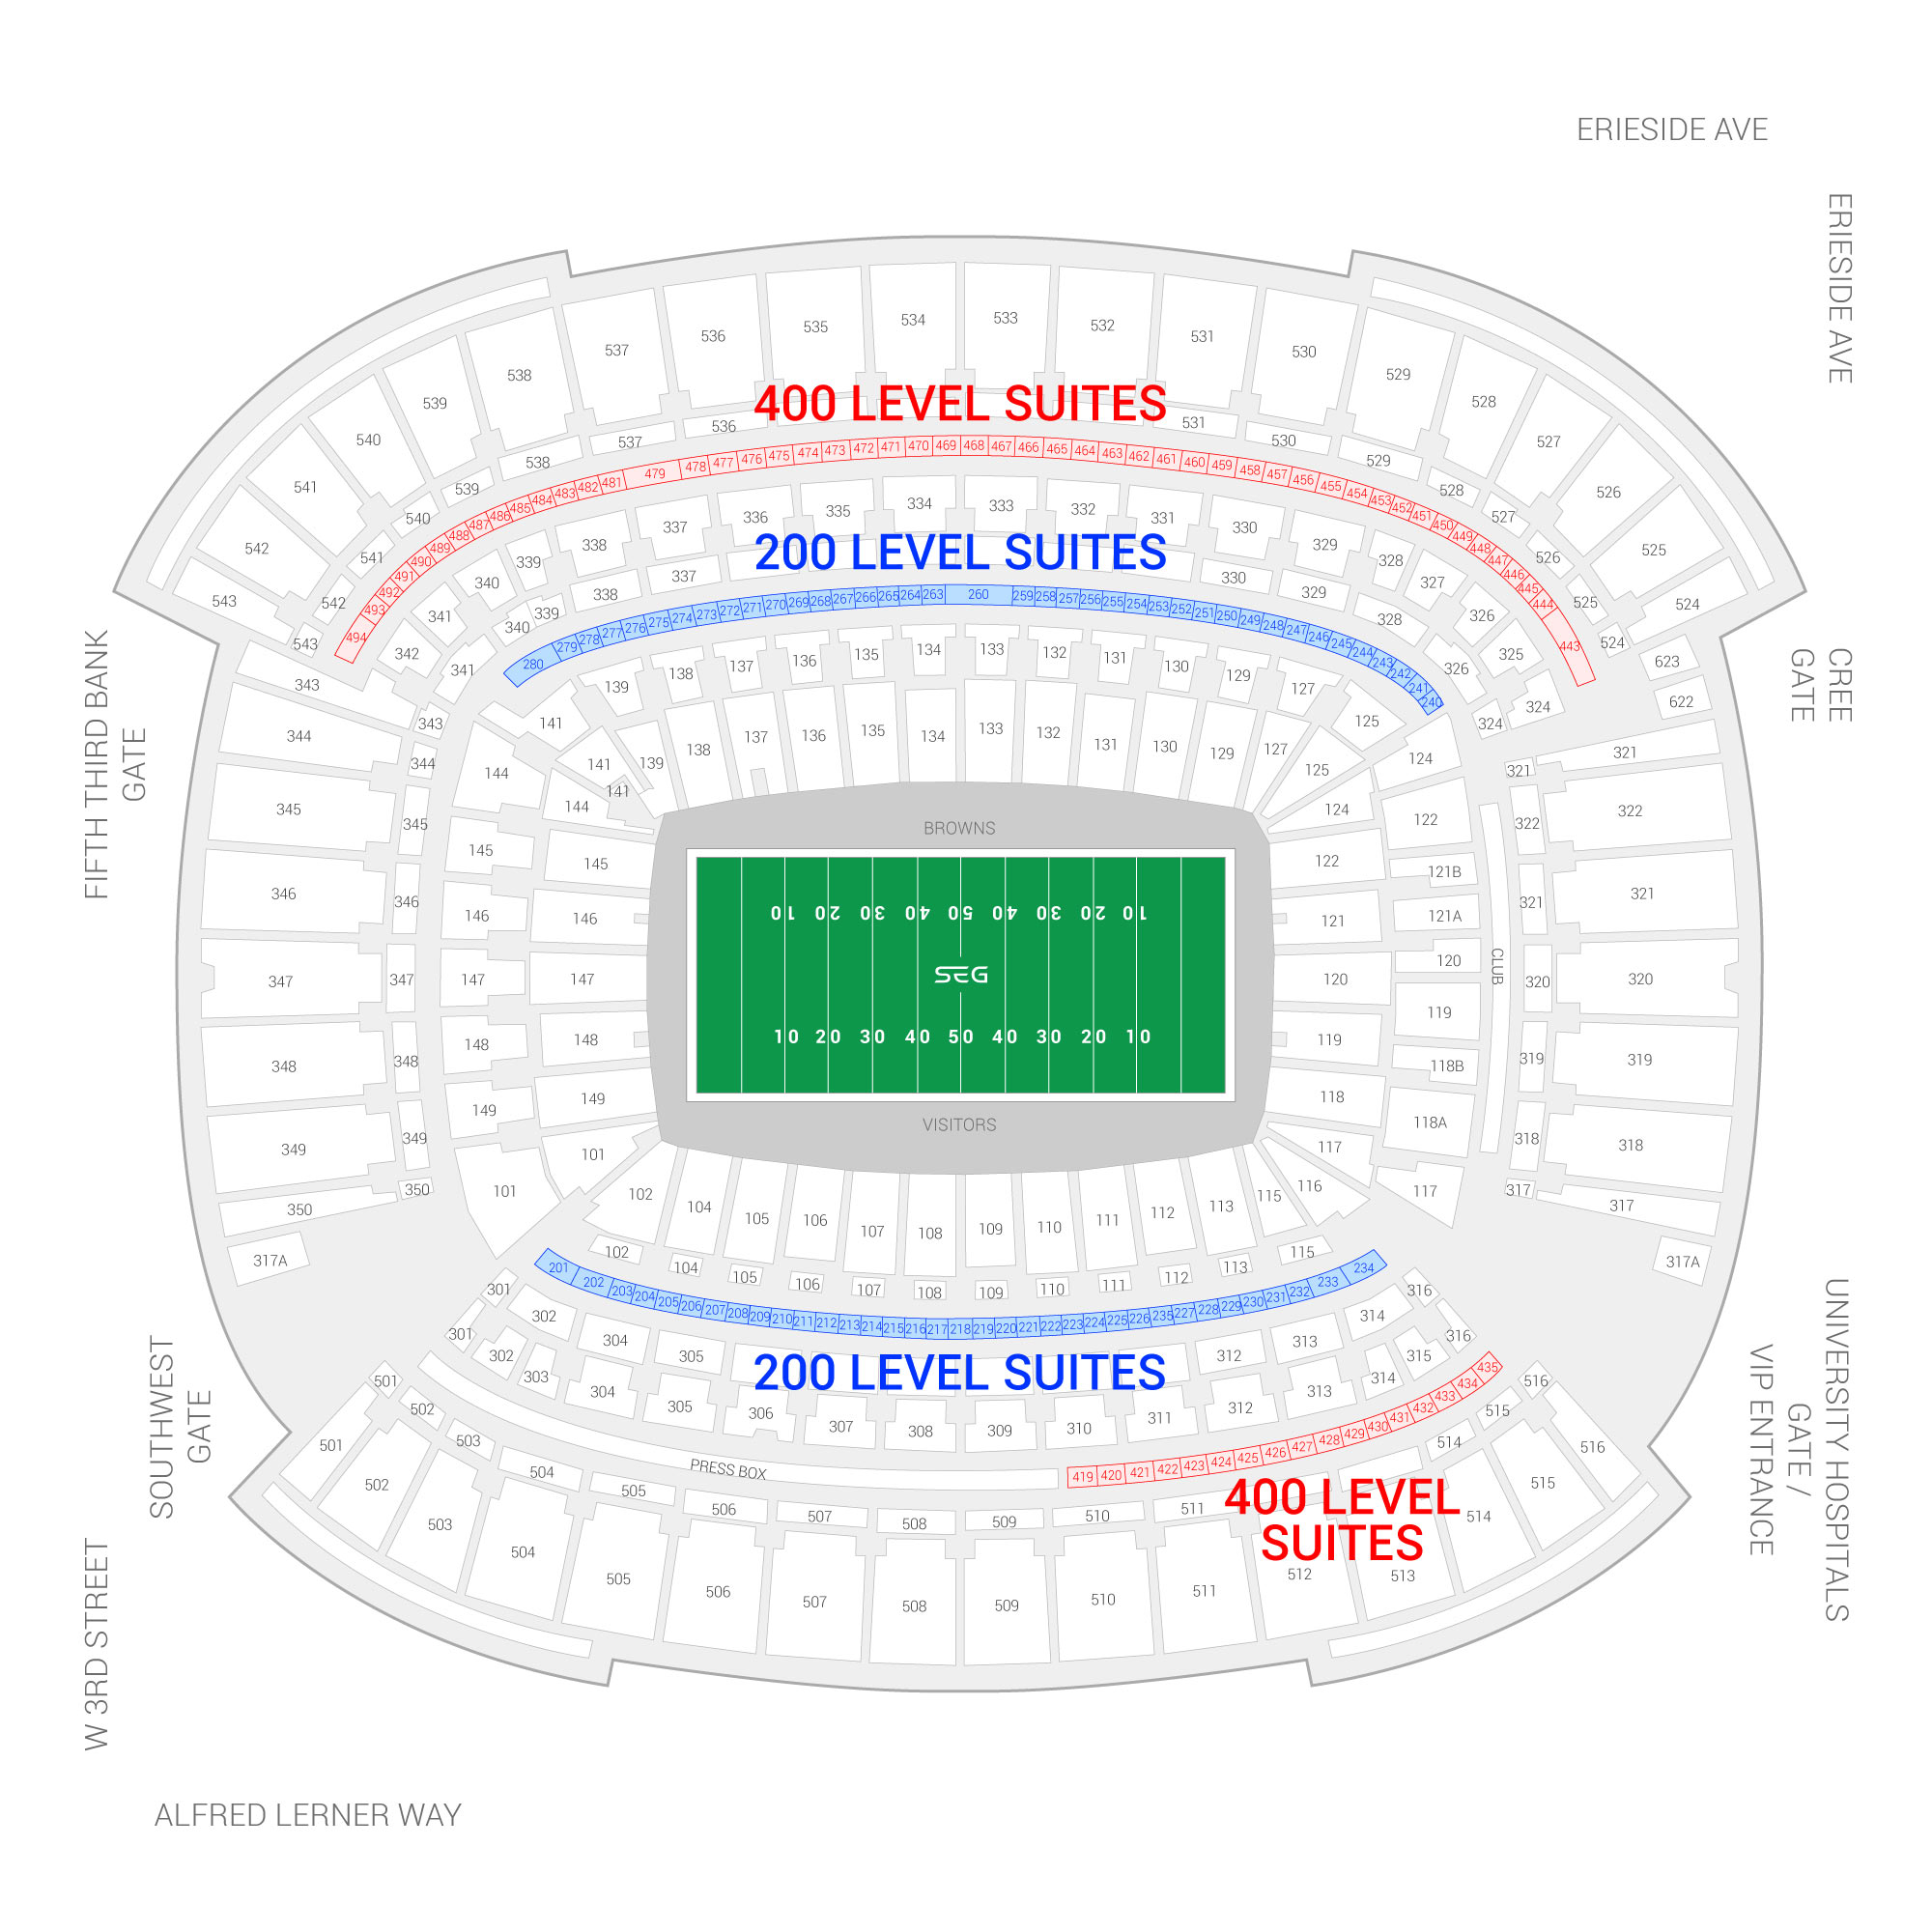 FirstEnergy Stadium / Cleveland Browns Suite Map and Seating Chart